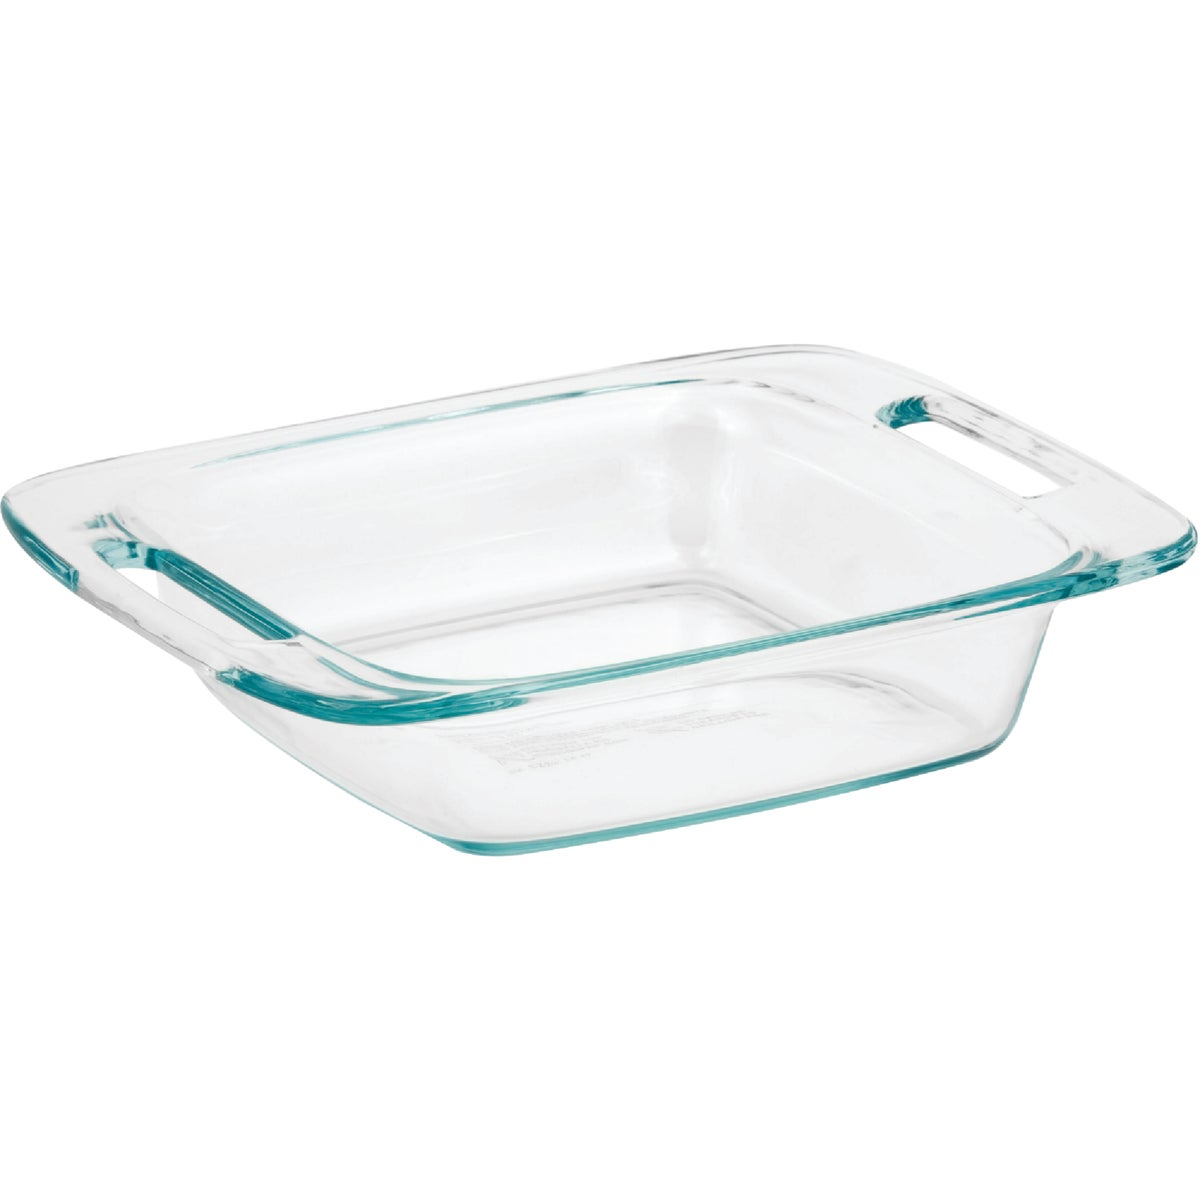 "8"" SQUARE CAKE DISH - 1085797 by World Kitchen"